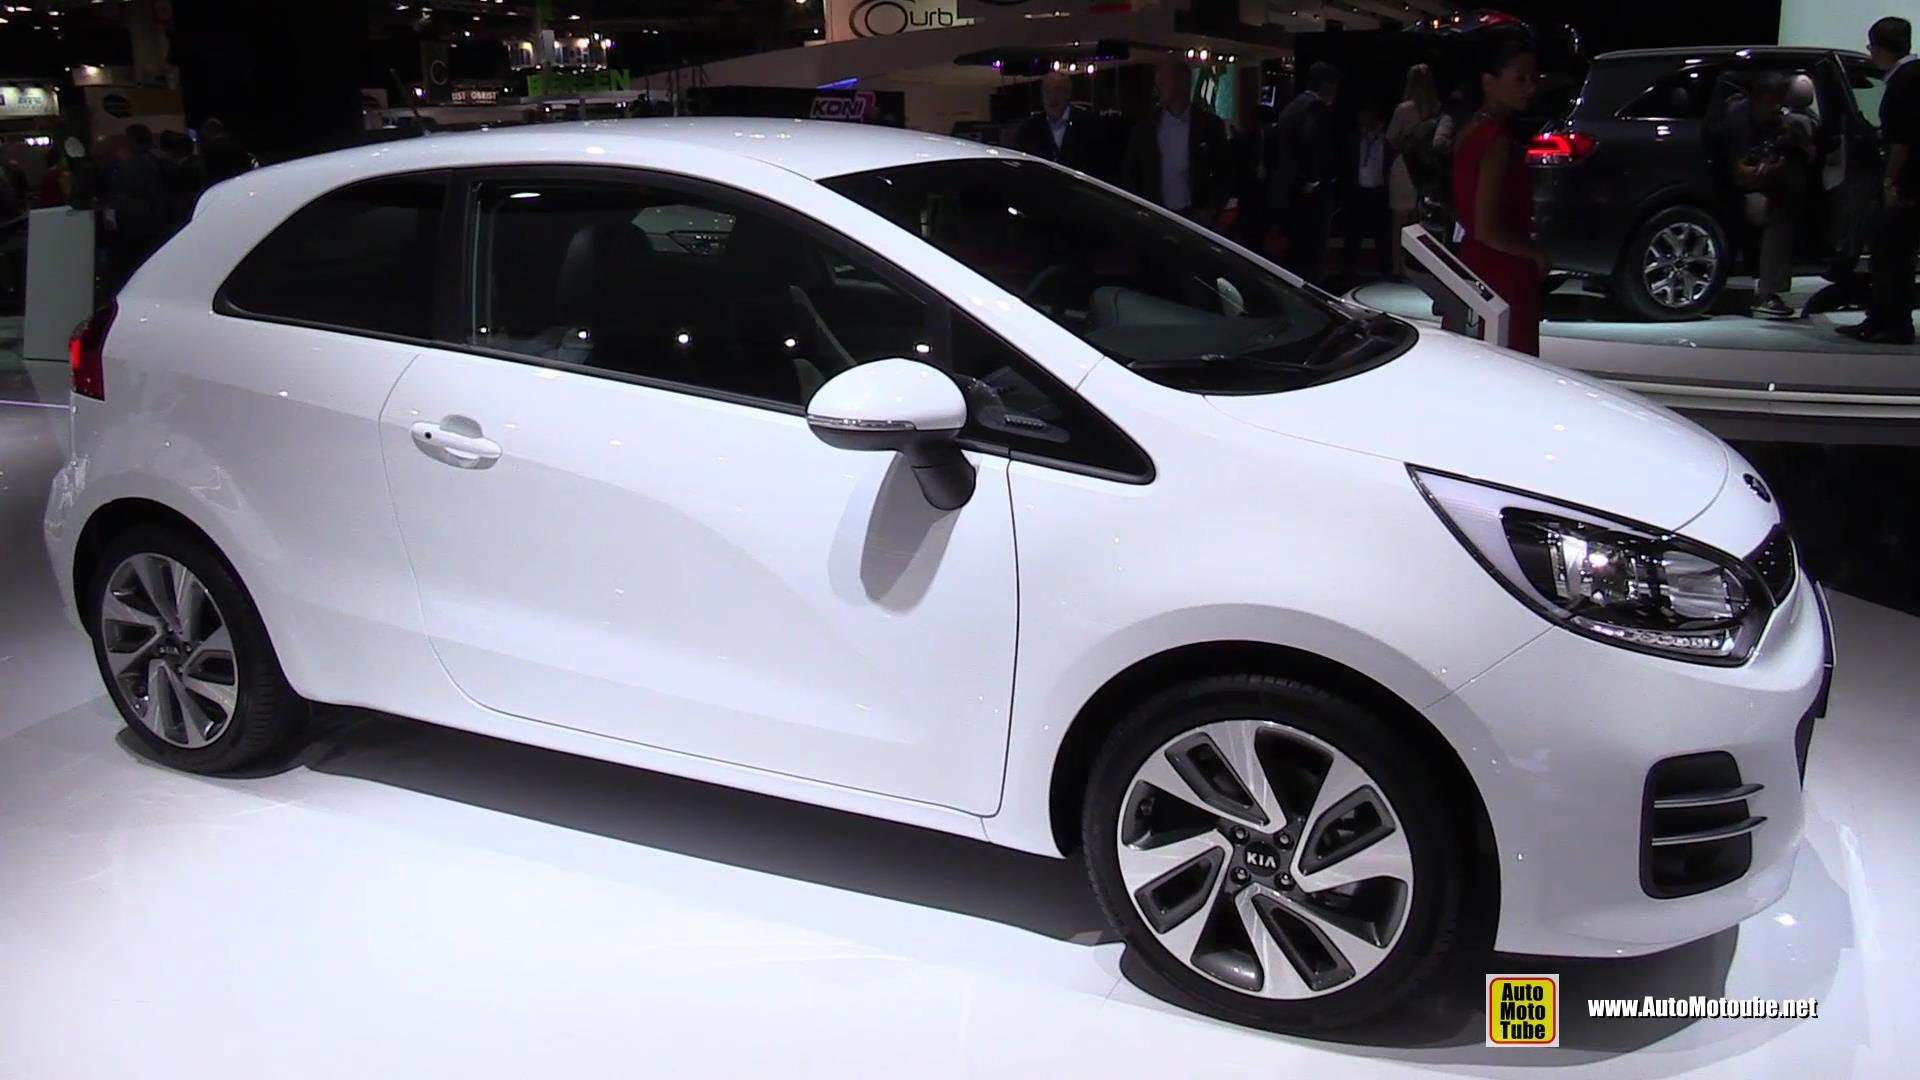 2016 kia rio ii hatchback pictures information and. Black Bedroom Furniture Sets. Home Design Ideas